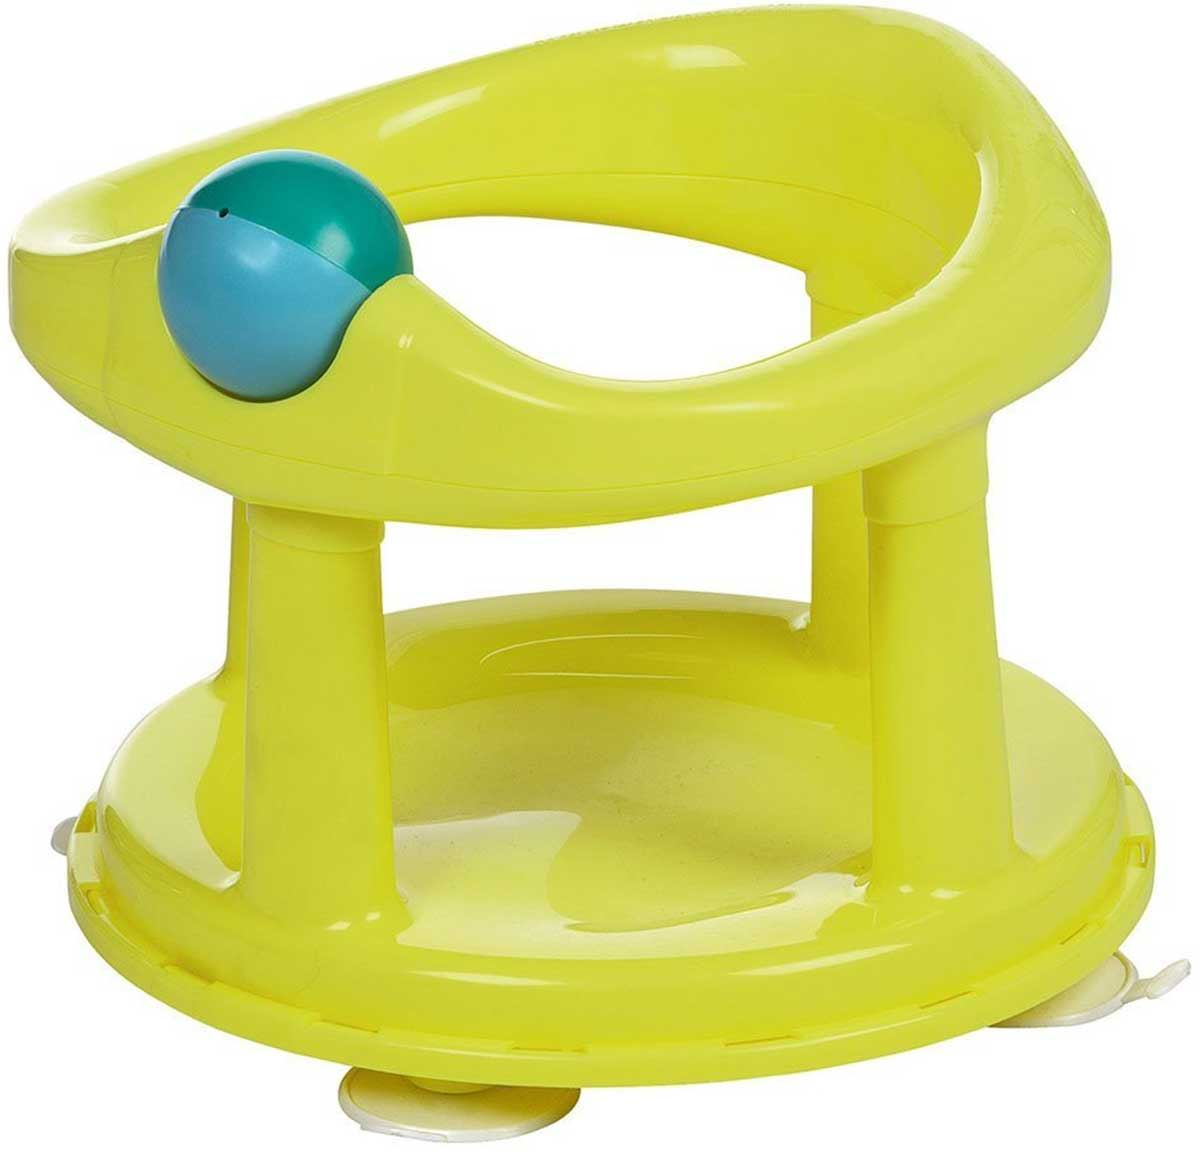 Safety 1st Swivel Bath Seat Baby Infant Tub Bathing Cleaning Support ...